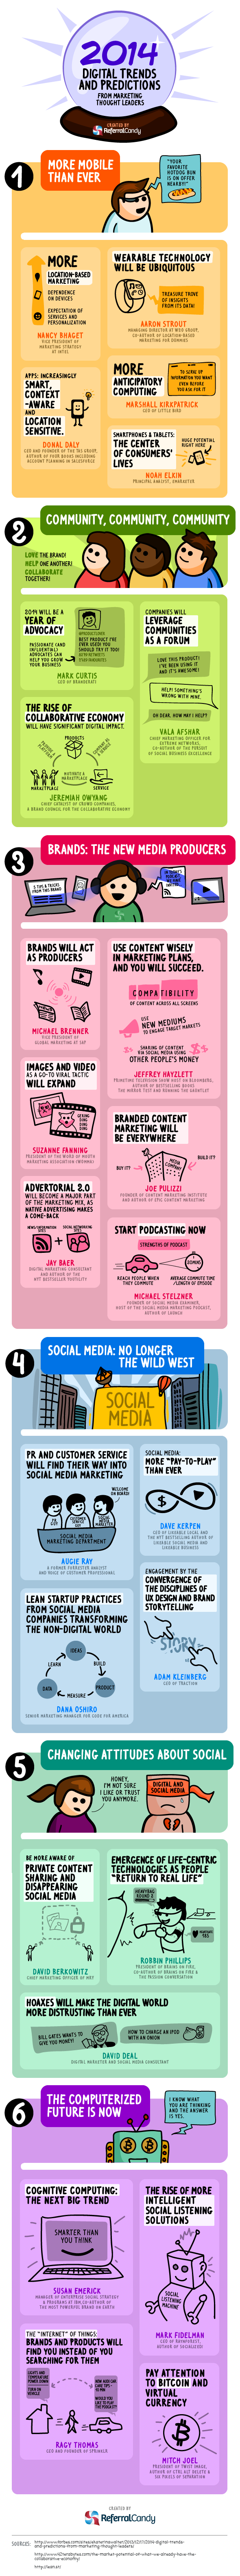 2014 Digital Marketing Trends And predictions From Marketing Thought Leaders - infographic